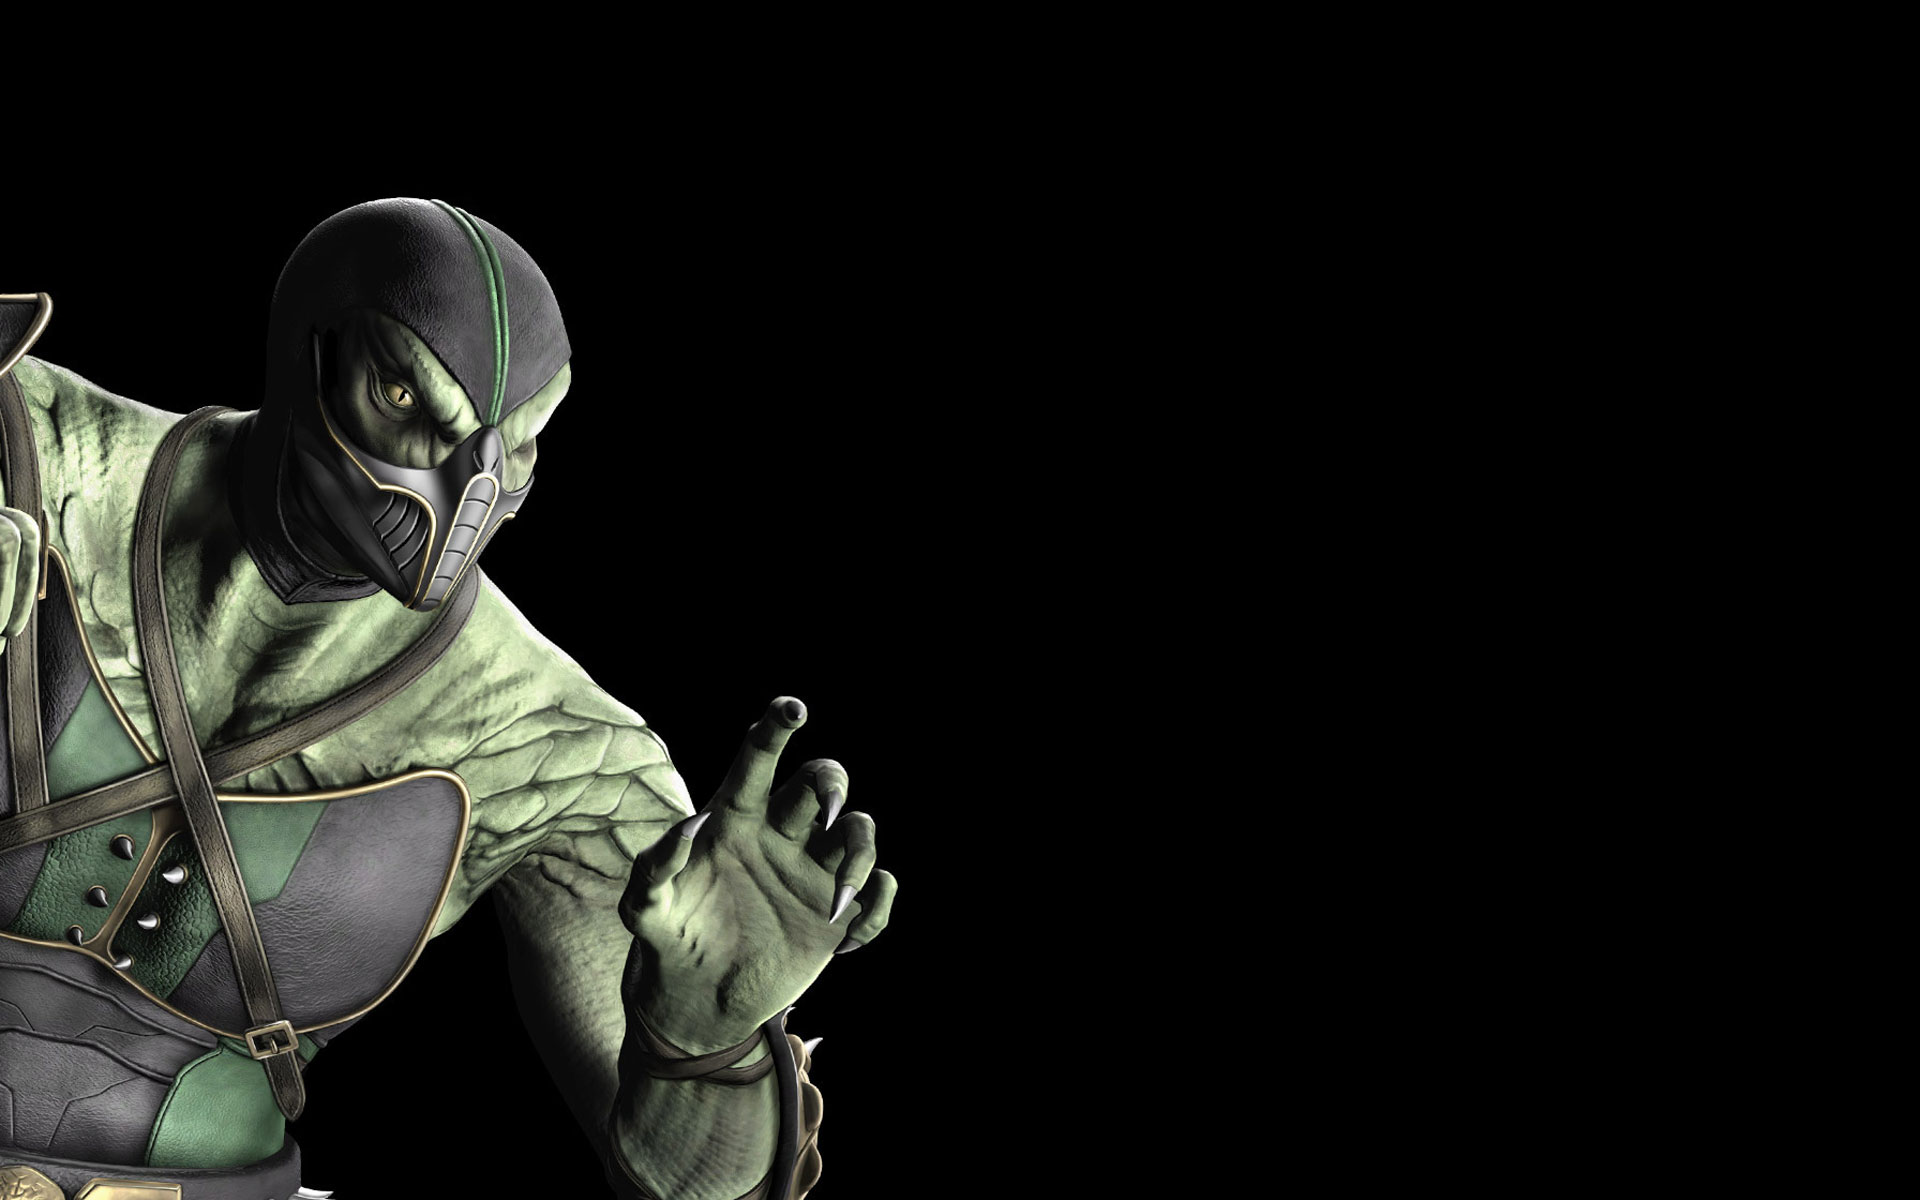 Awesome Mortal Kombat Wallpaper 2563 Wallpaper Wallpaper Screen 1920x1200